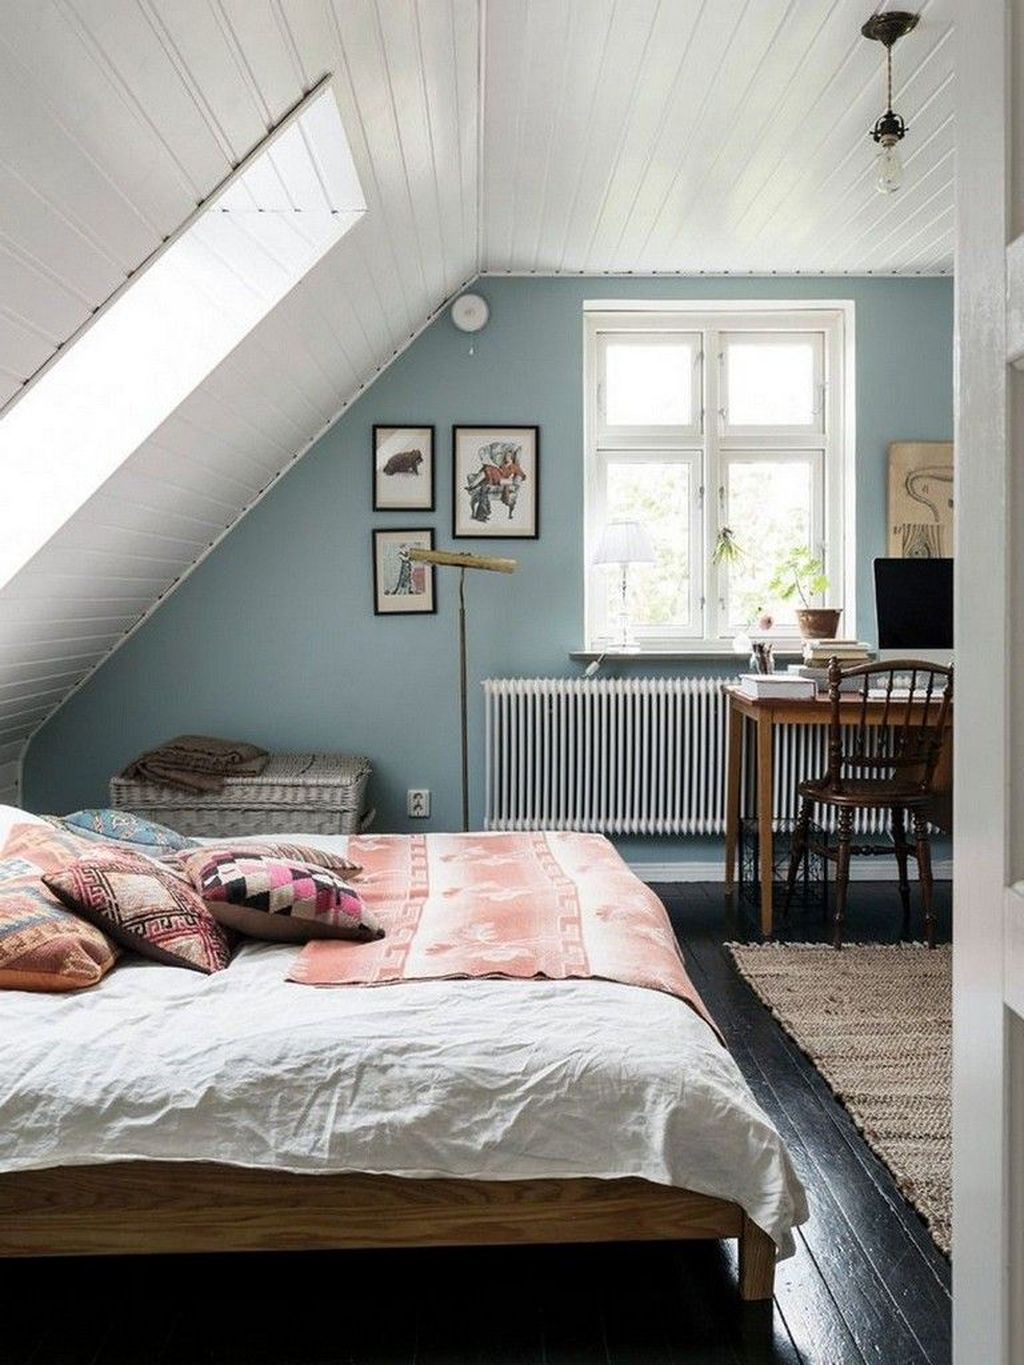 Amazing Attic Bedroom Design Ideas That You Will Like 02